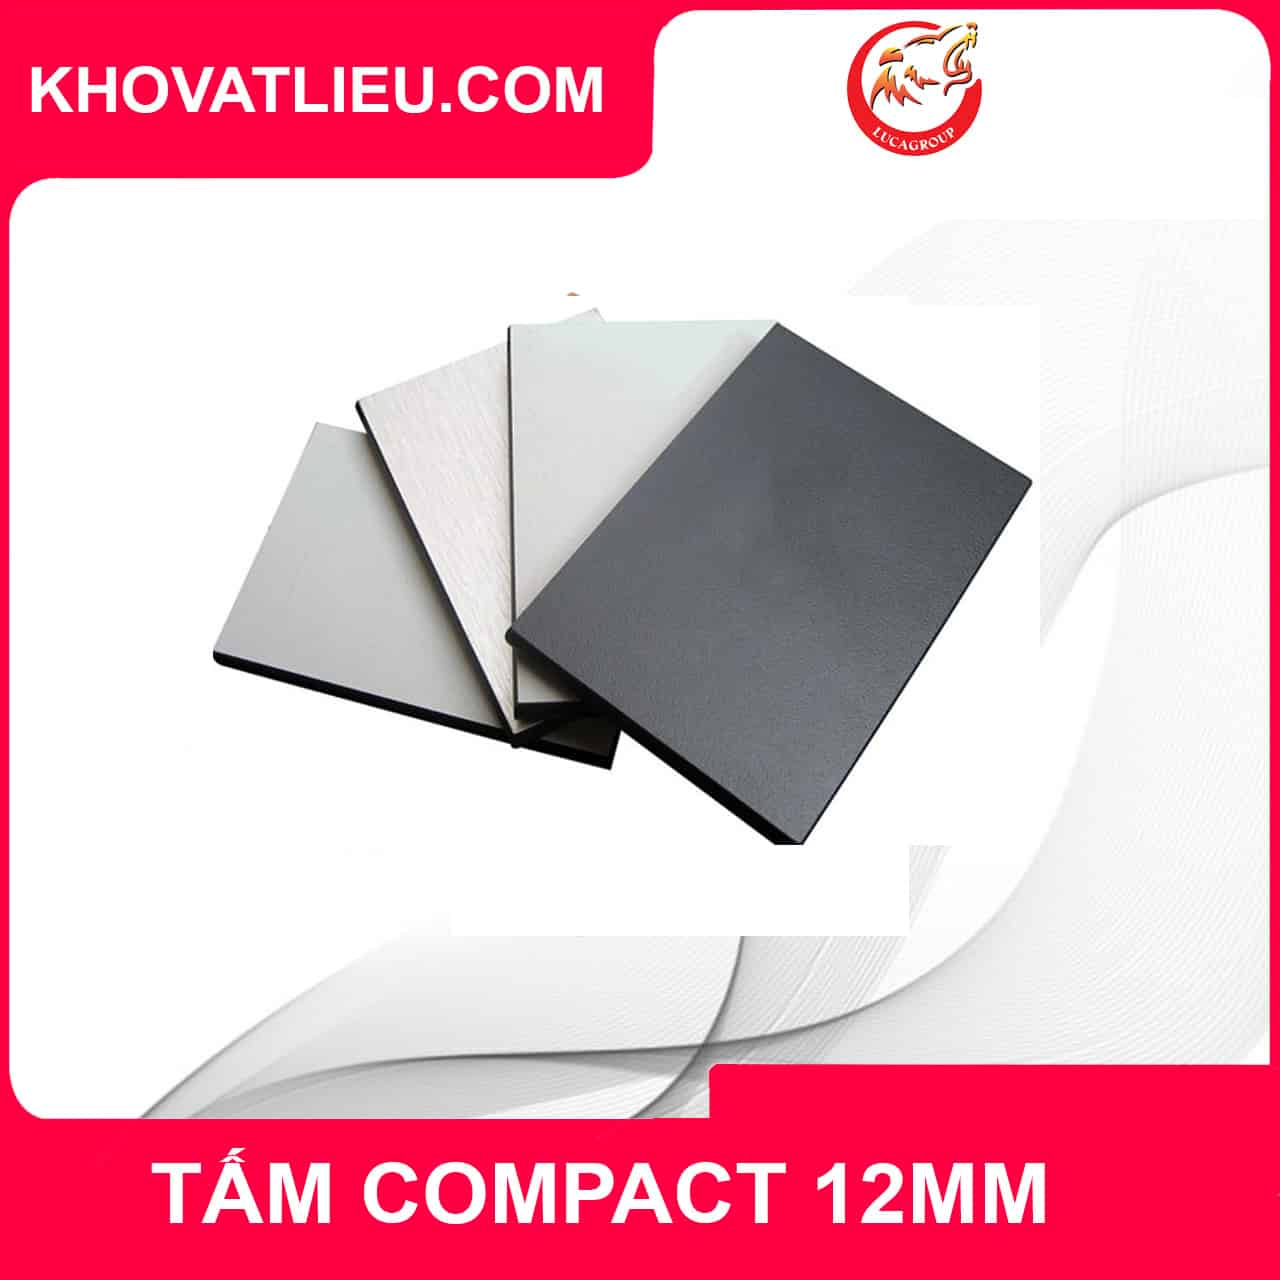 TAM COMPACT 12MM